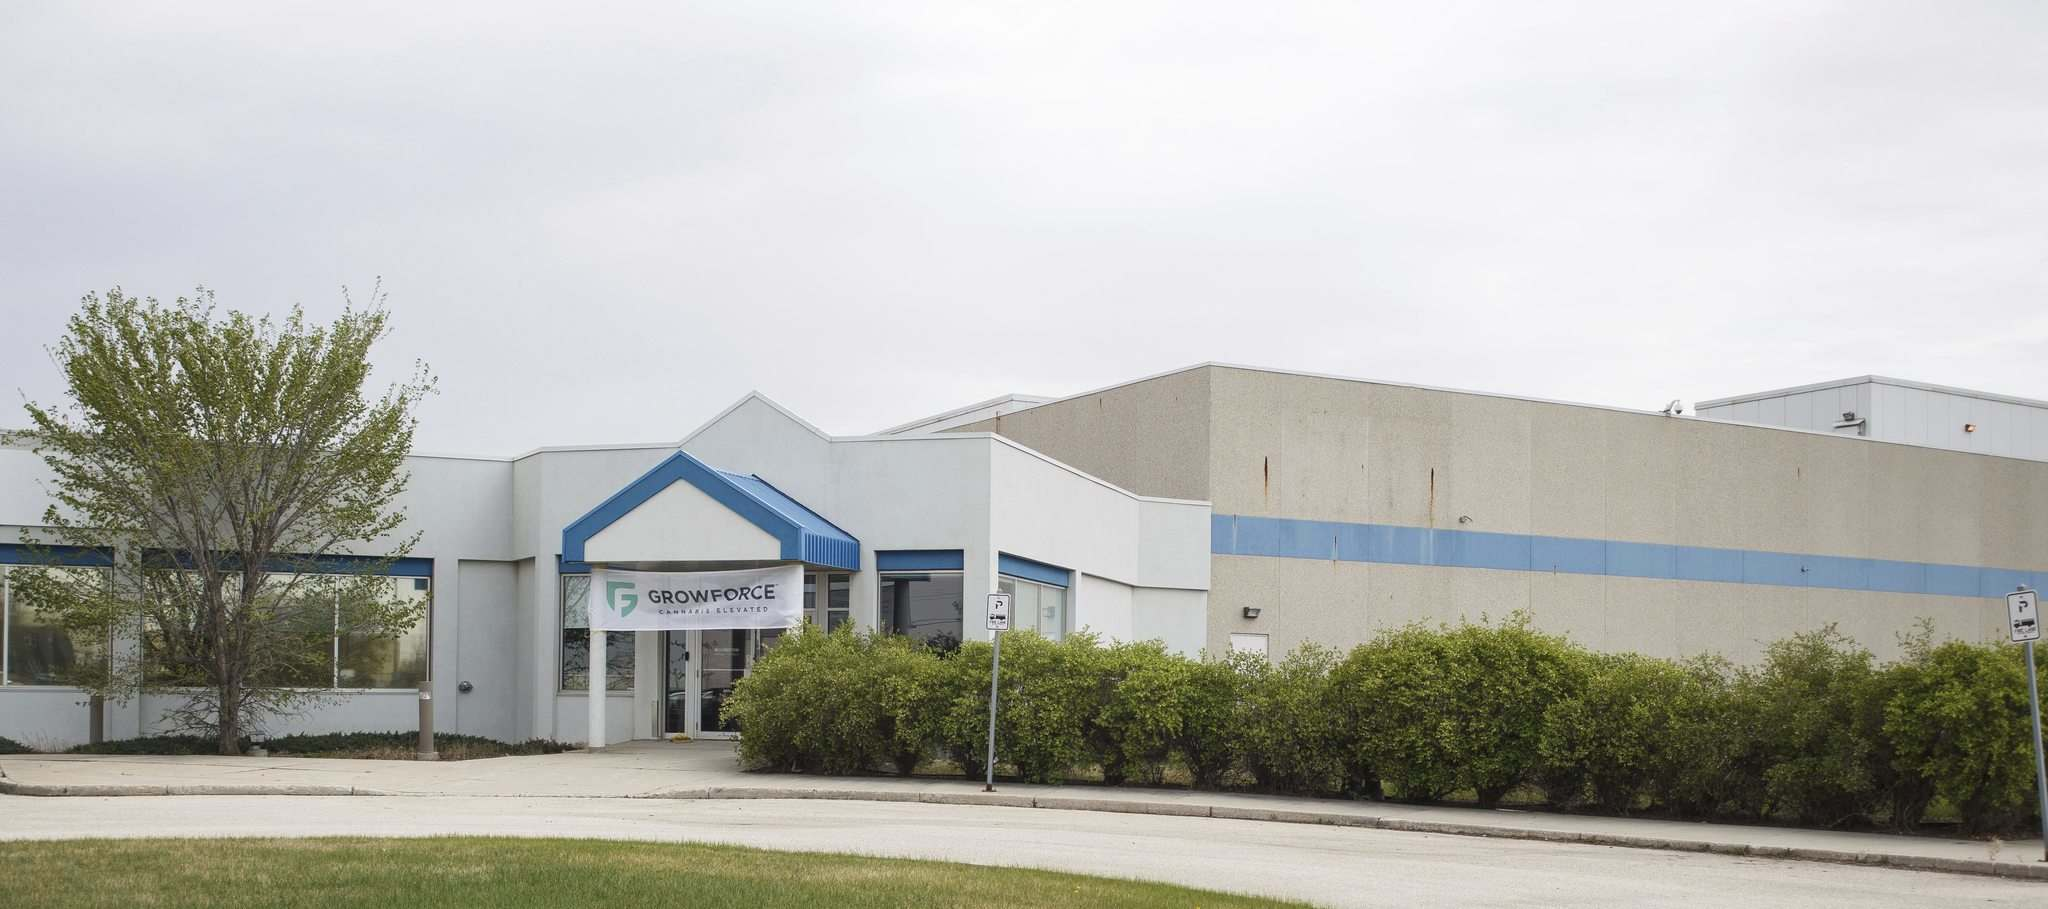 GrowForce Holdings will locate in a former meat processing facility which has sat empty for about eight years. (Mike Deal / Winnipeg Free Press)</p>